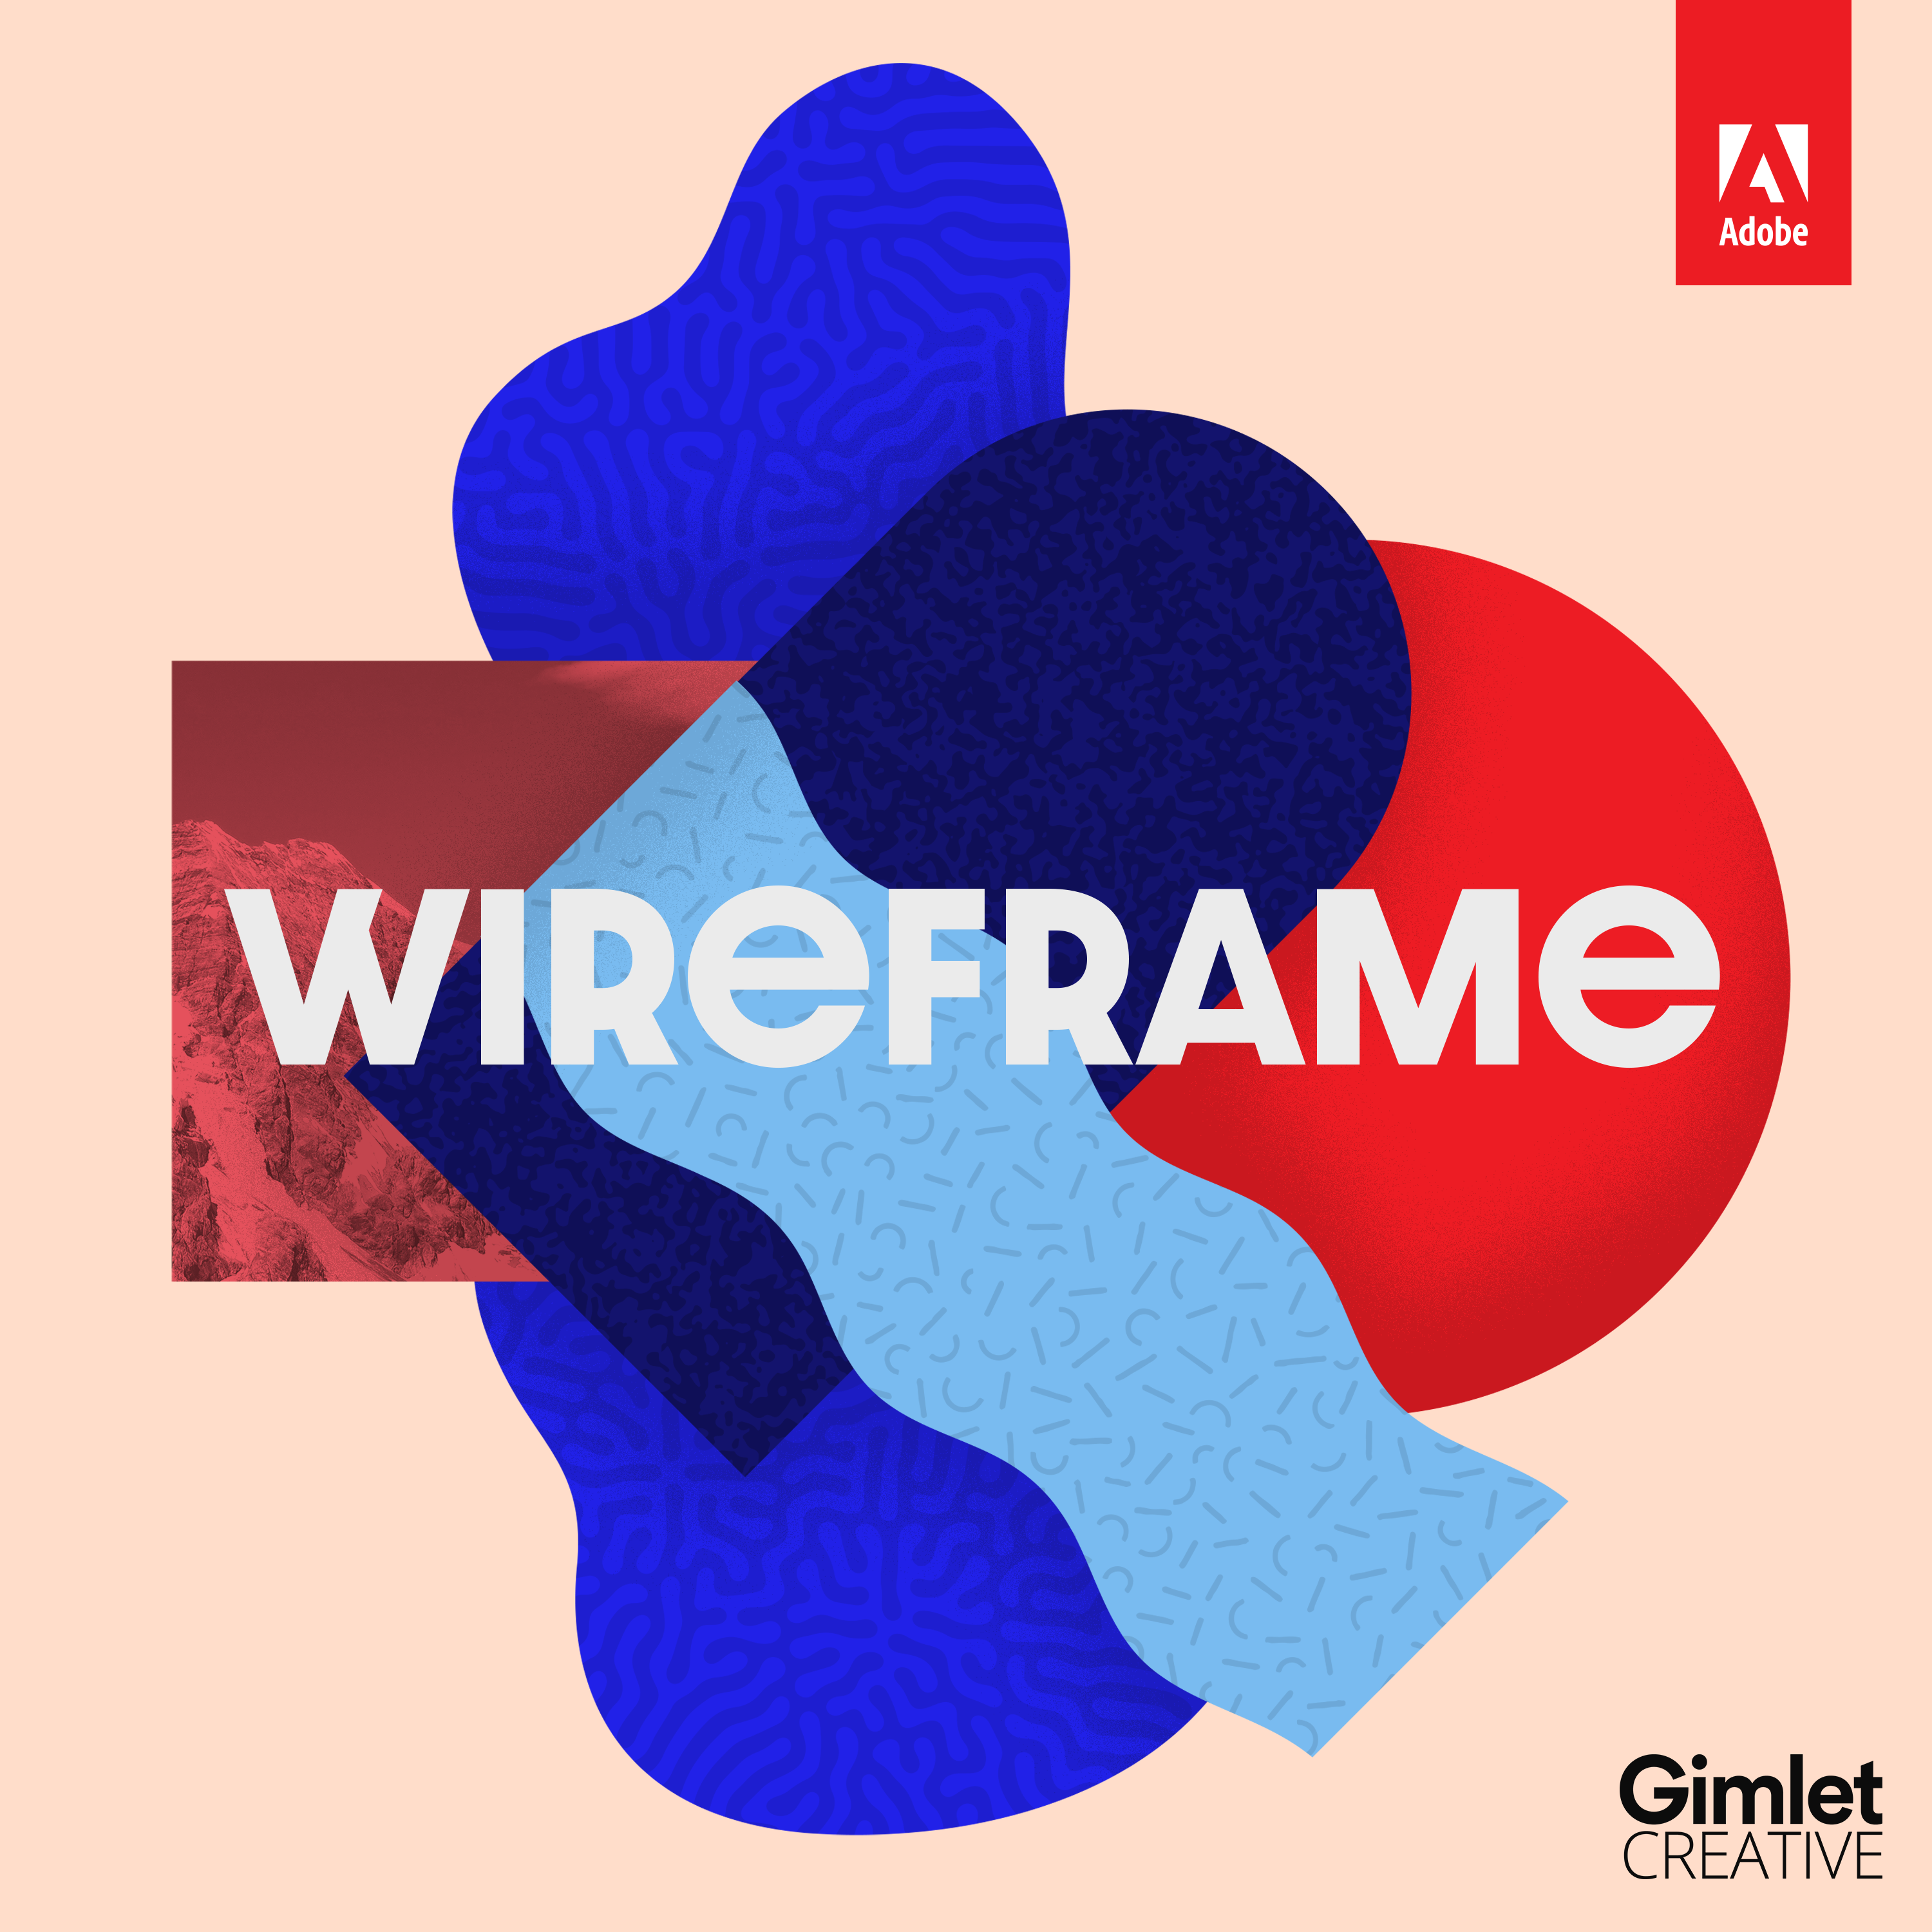 20180921_Wireframe-ShowArt.png